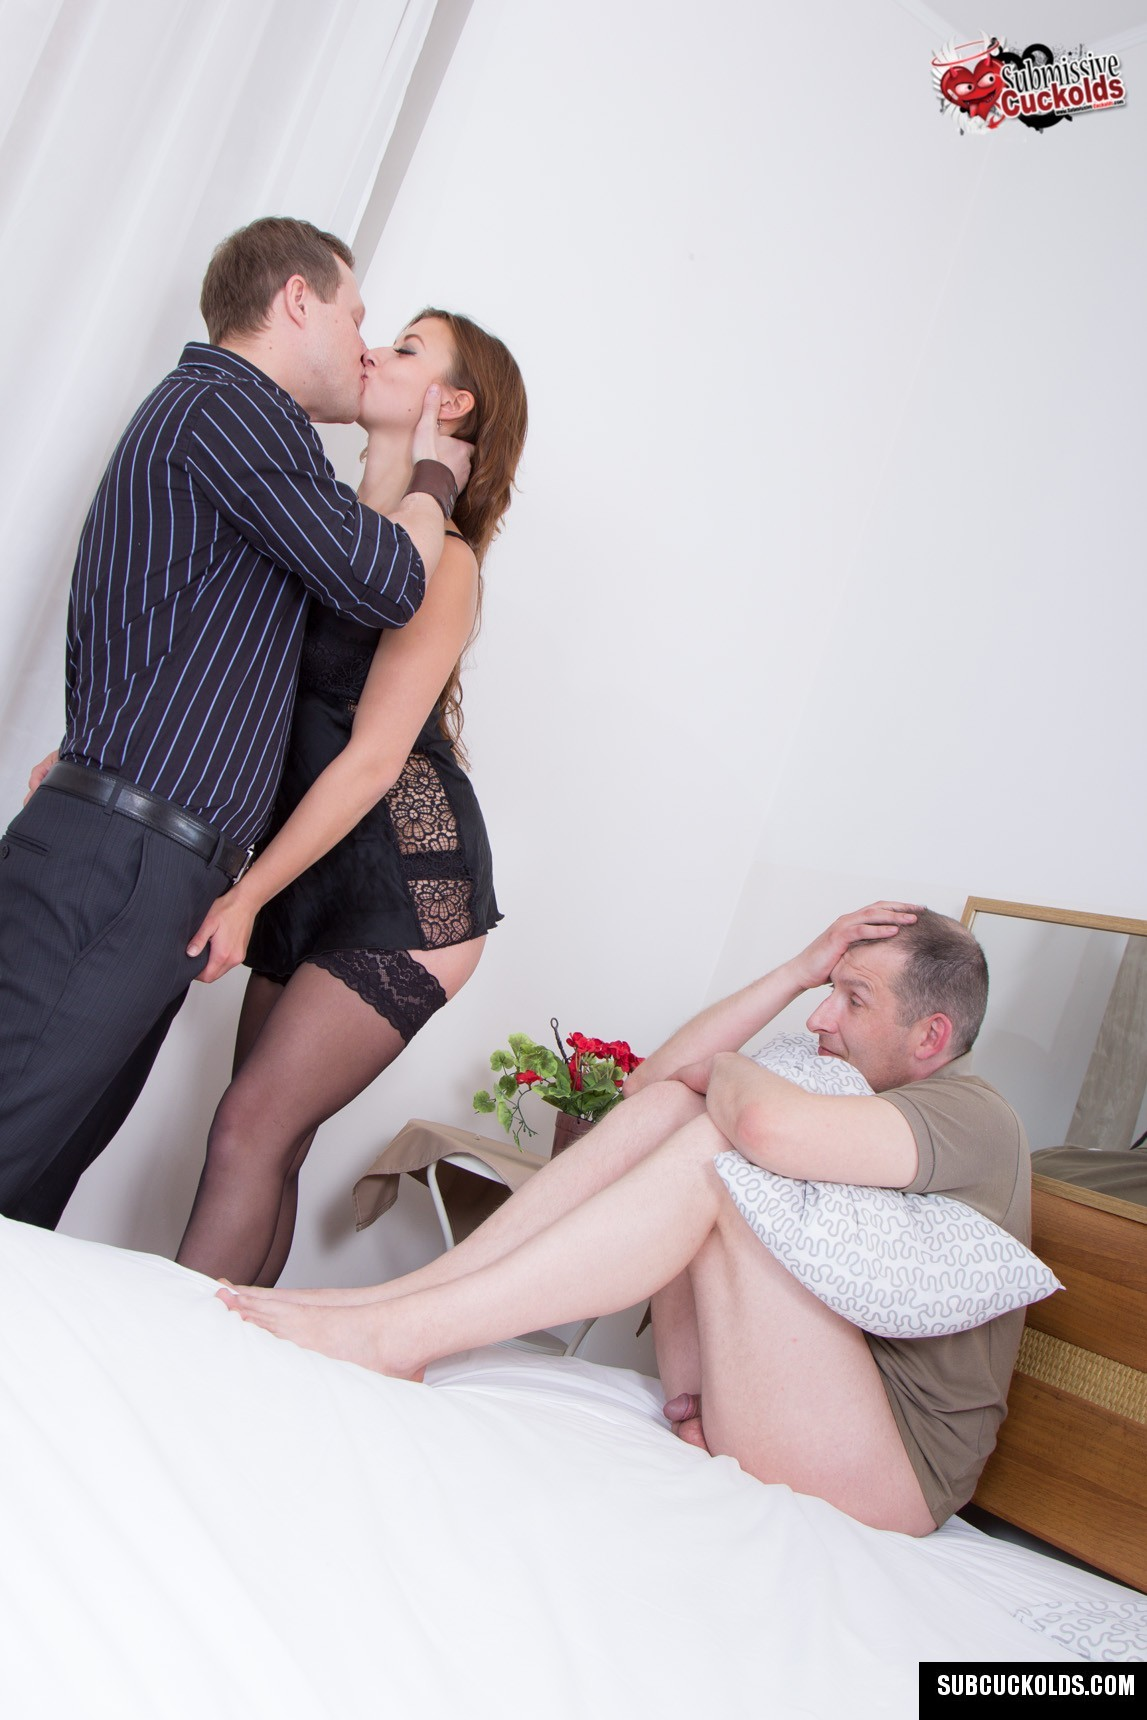 A young cuckold relationship part 2 - 1 part 6